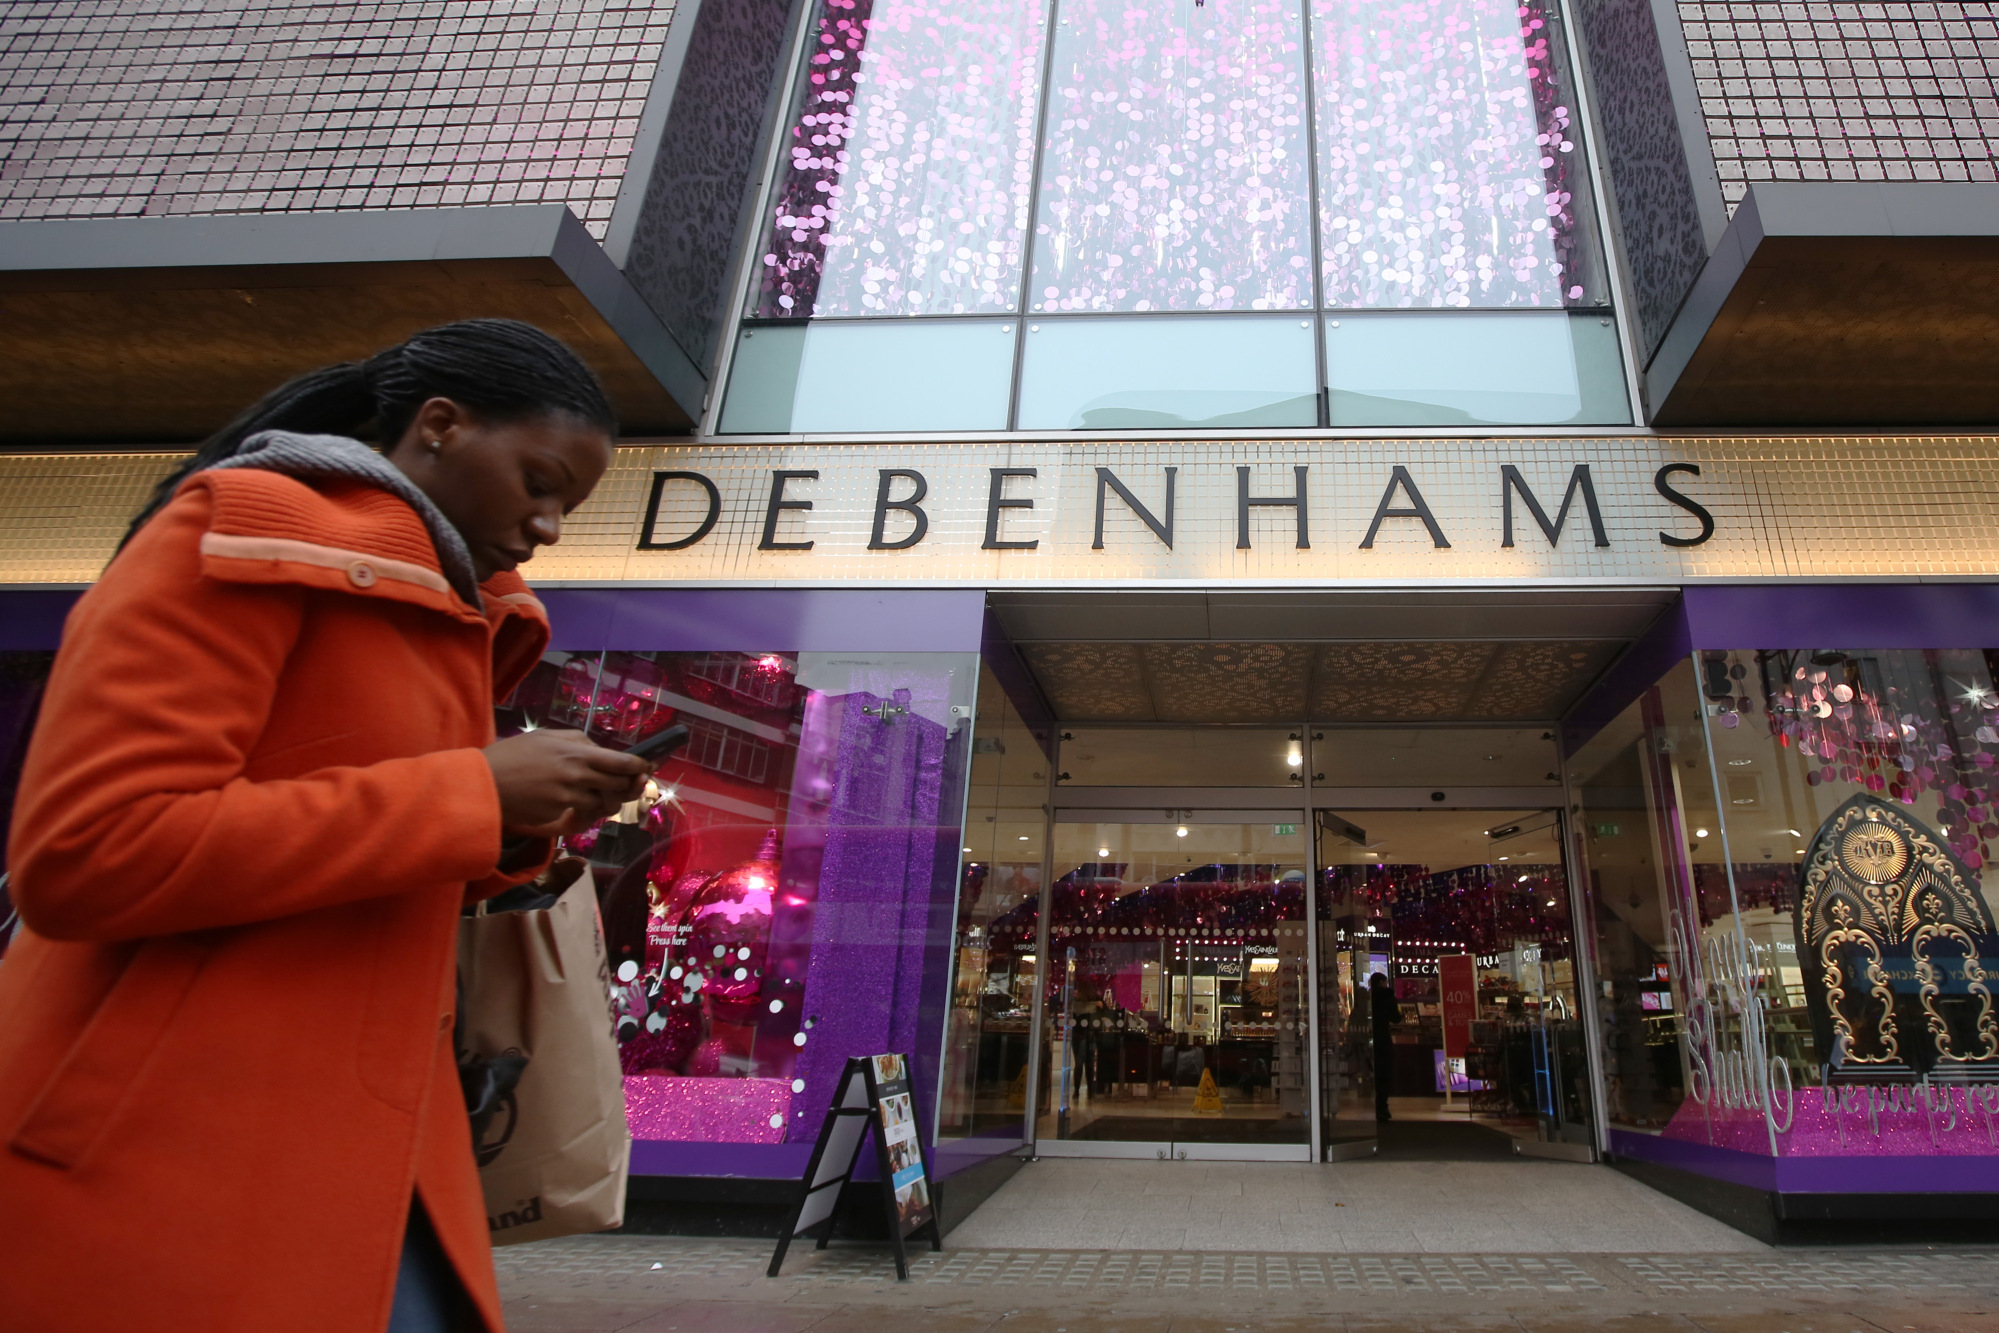 A shopper uses a mobile device as she walks past the entrance to a Debenhams Plc department store in London, U.K